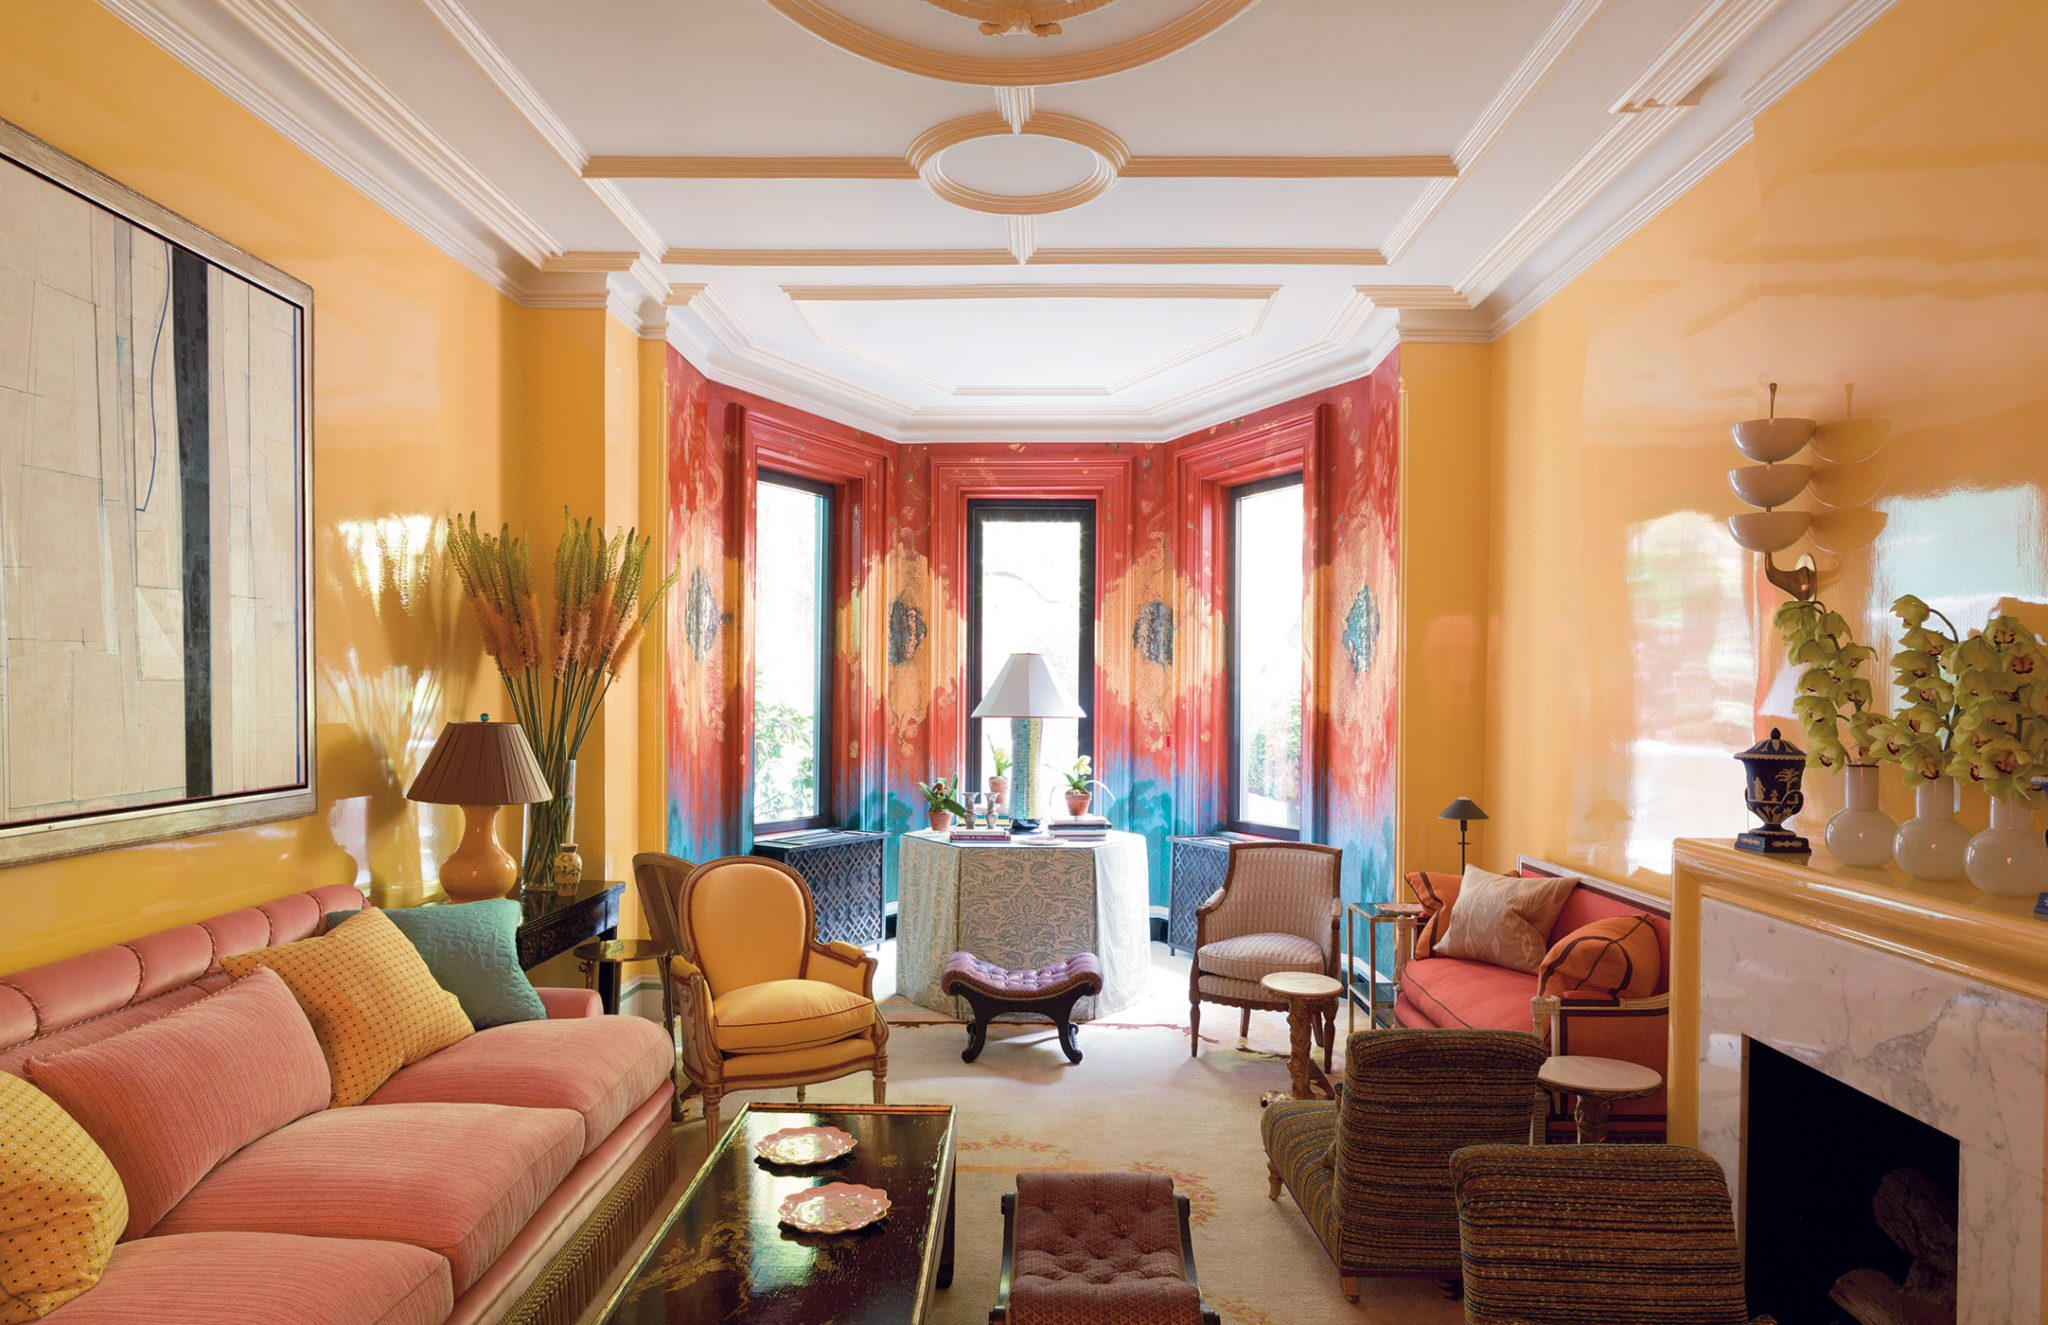 A glamorous New York City townhouse is invigorated with bold color and murals. By Bilhuber & Associates